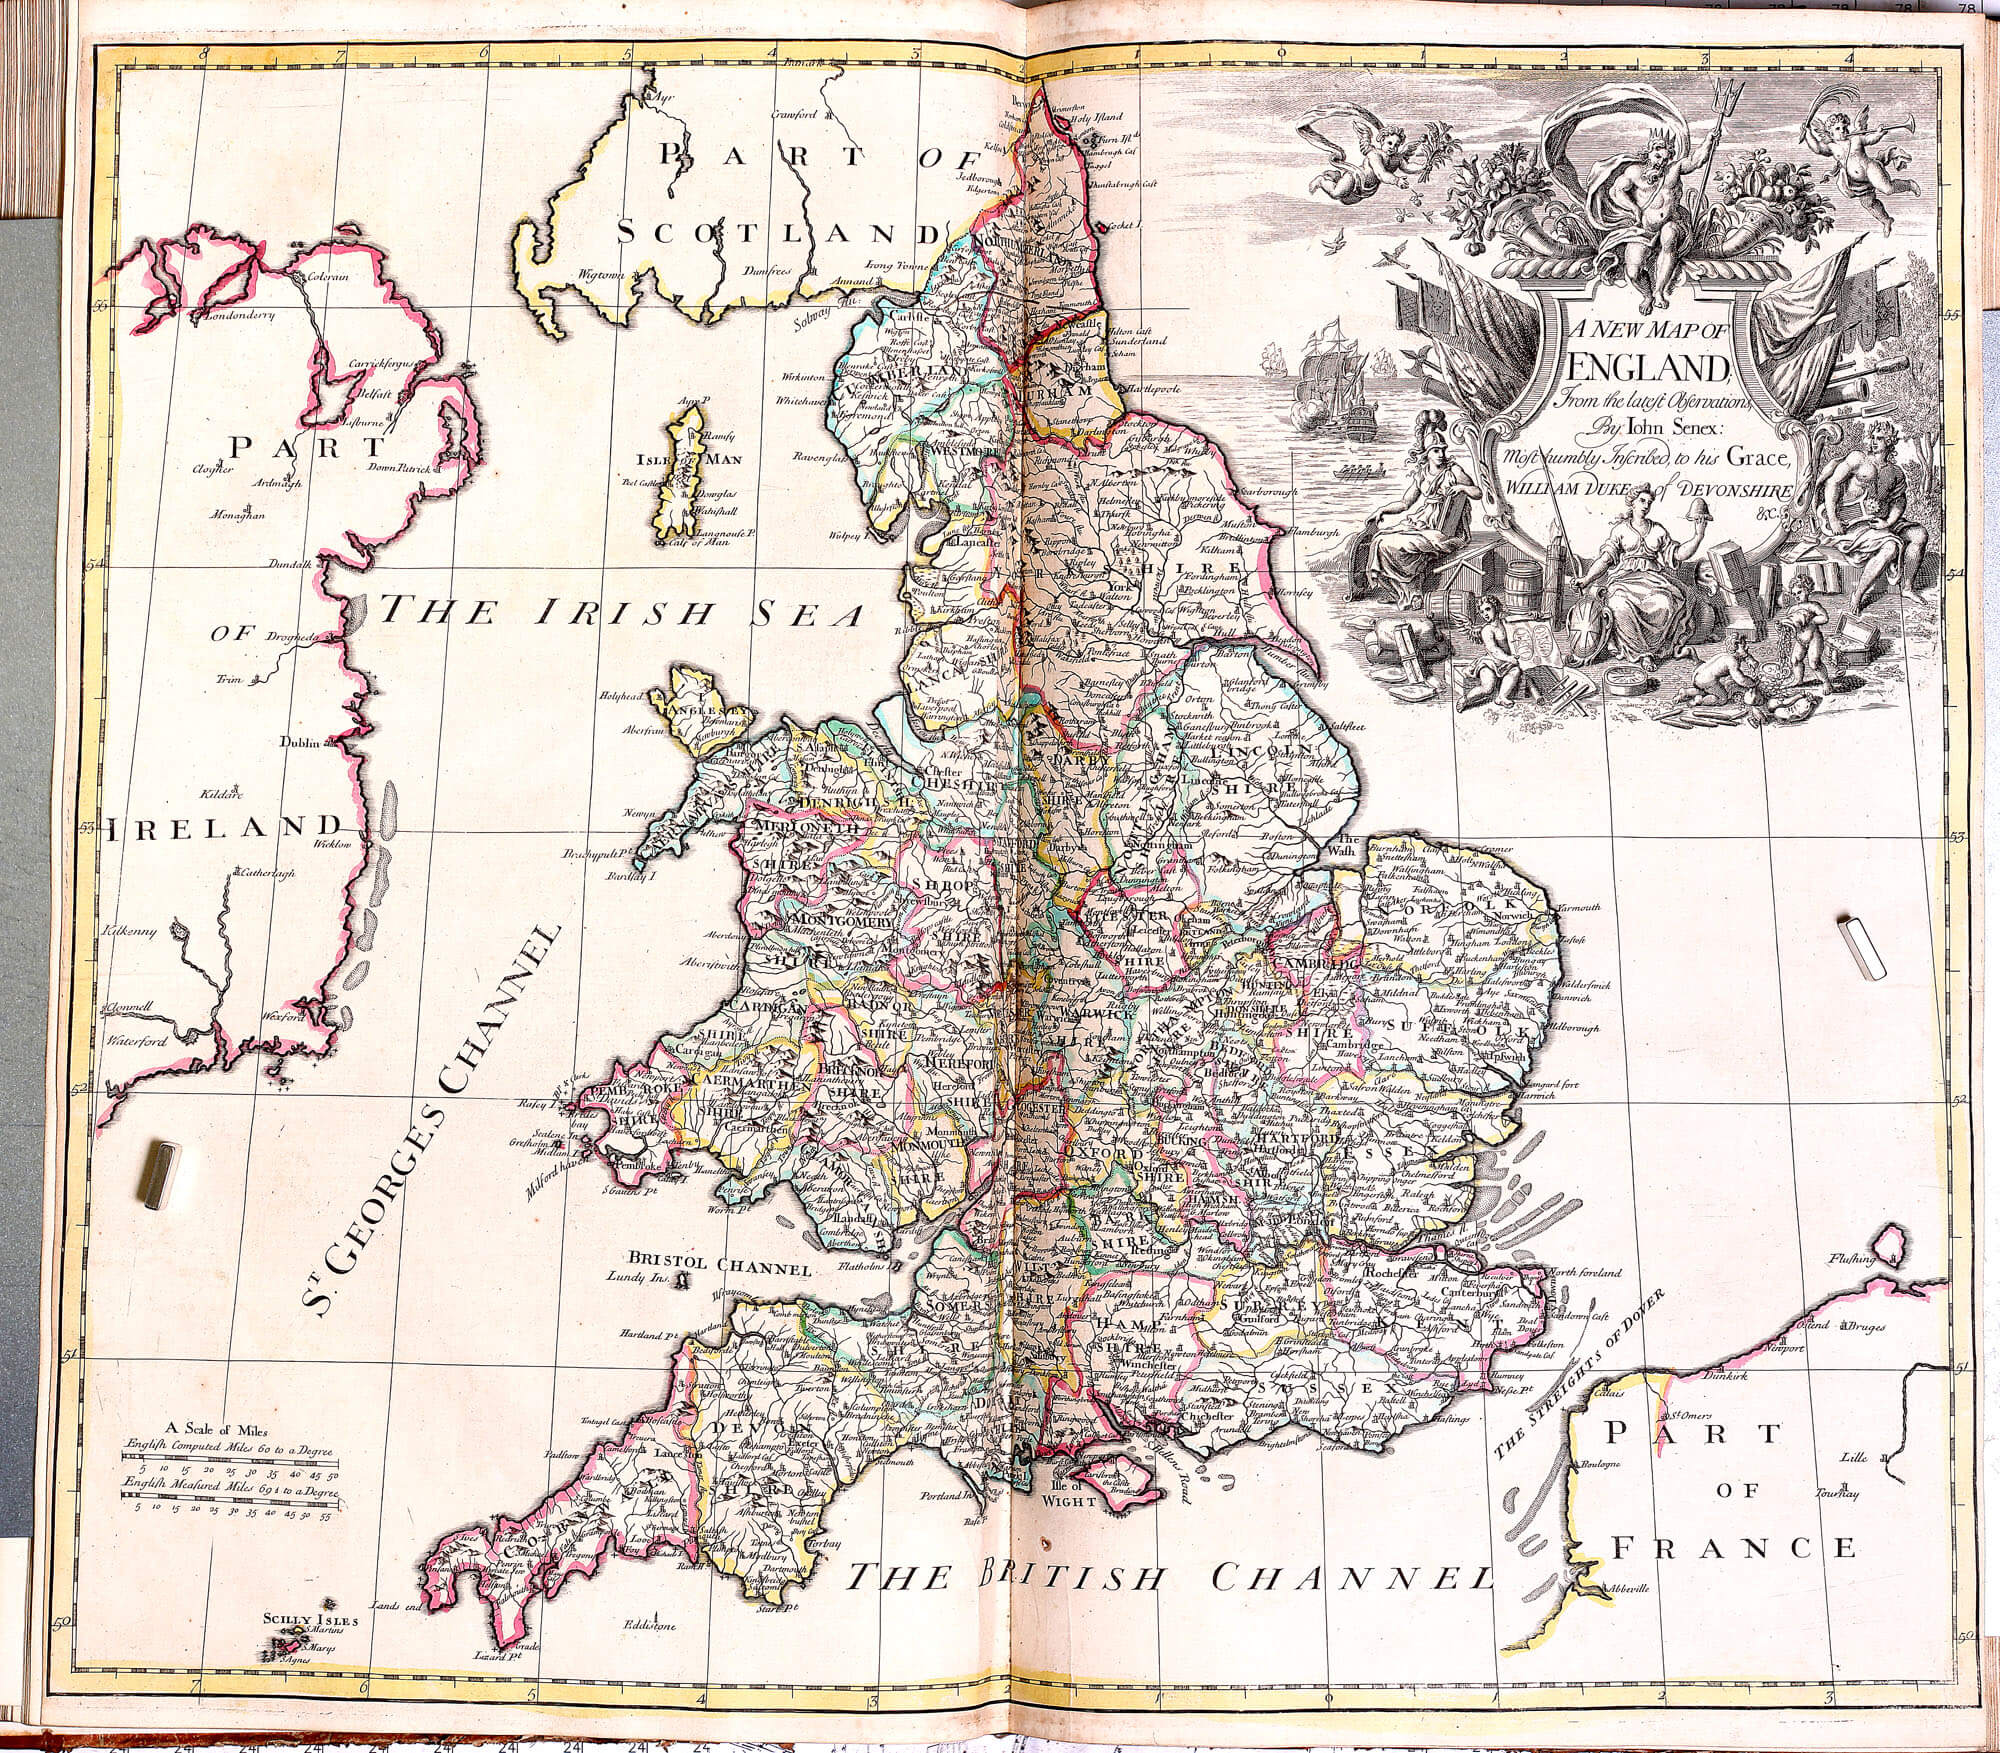 World atlas john senex 1721 l brown collection pp a 15 21 england gumiabroncs Image collections